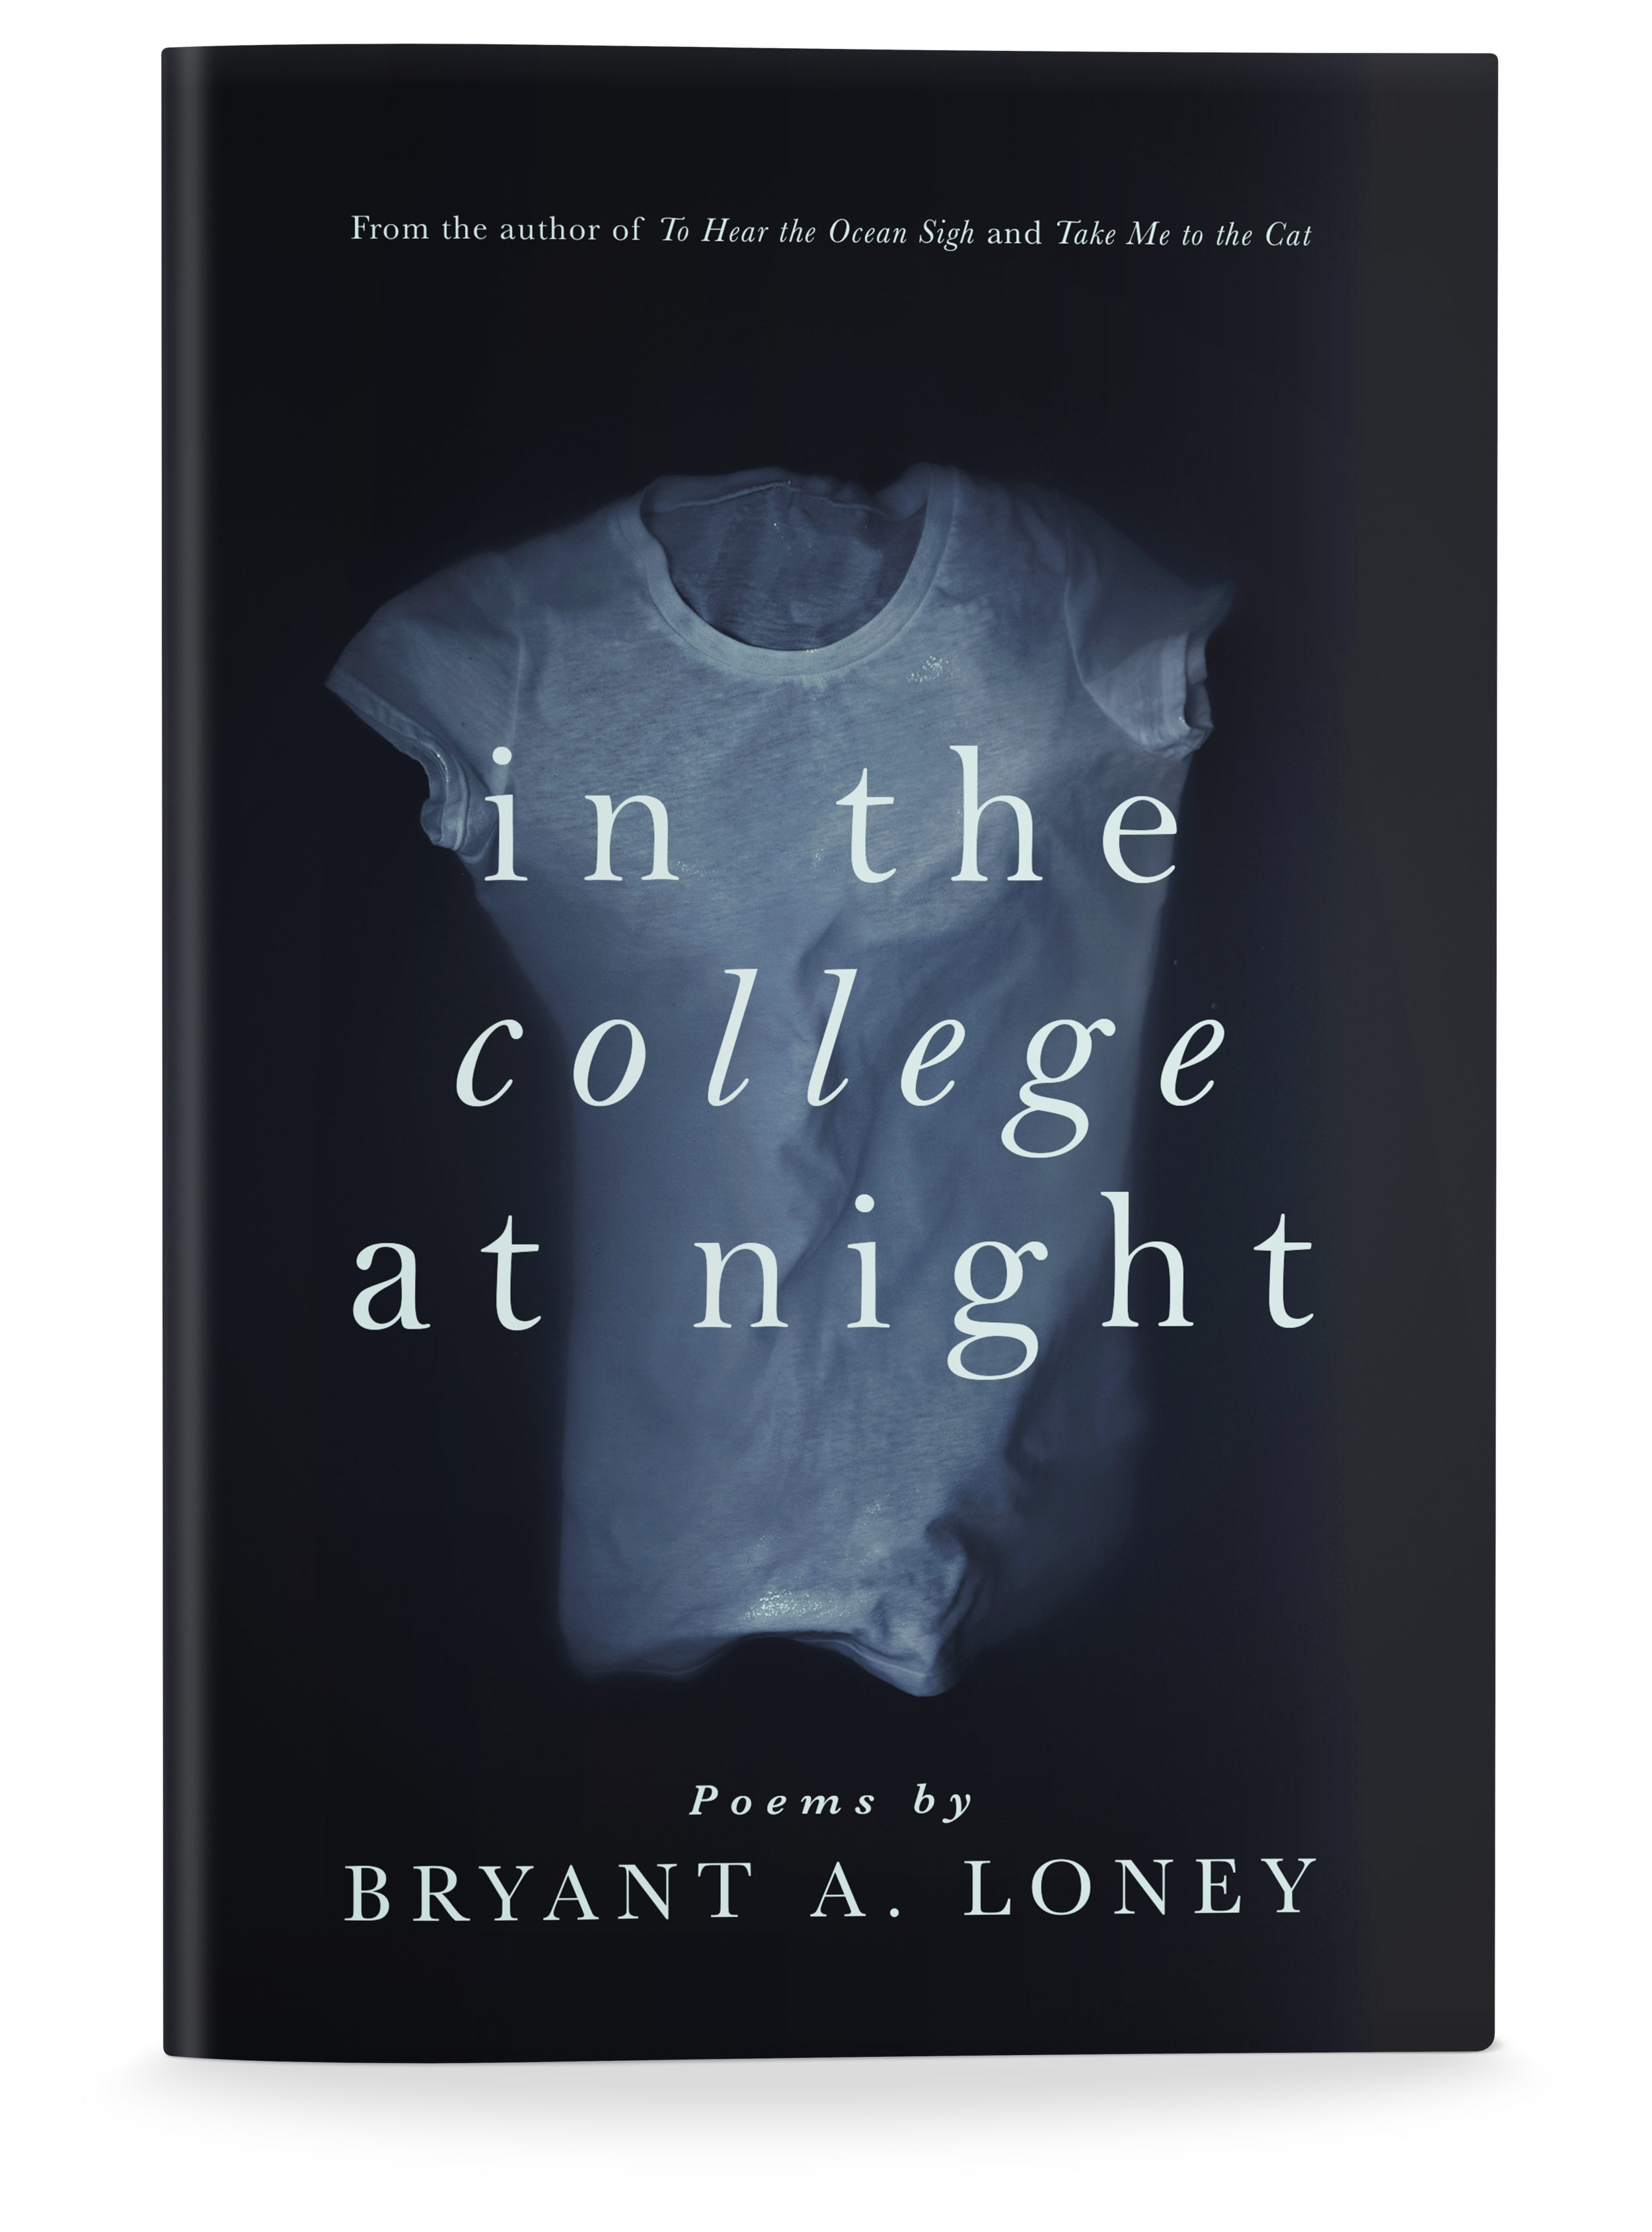 In the College at Night - ________________________Authored by Bryant A. LoneyPublished by PeppernellIn the College at Night is about a young man's coming of age within the complexities of campus life.Full of pathos, poignancy, and provoking introspection, this poetry collection guides readers through the quiet magic of a summer romance, the generational restlessness of packed parties, the angst of a hopeless relationship, and the self-reflection of graduation afternoon. In the style of spoken word poets such as Phil Kaye and Rudy Francisco, Loney's poems capture the clumsiness and spirit of today's youth and their rampaging wild hearts.